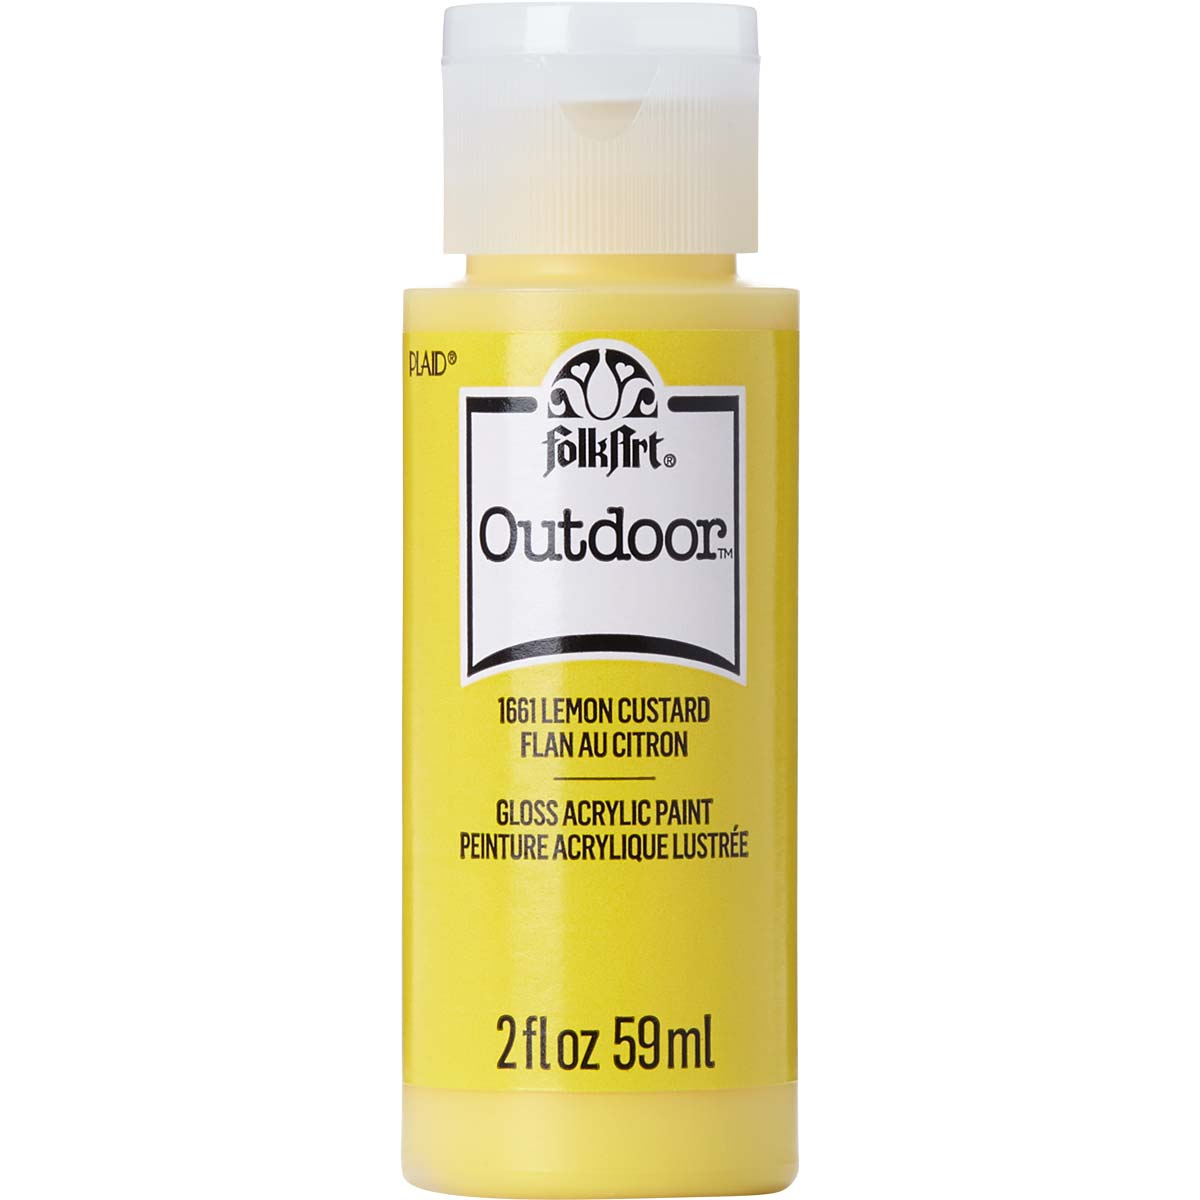 FolkArt ® Outdoor™ Acrylic Colors - Lemon Custard, 2 oz. - 1661